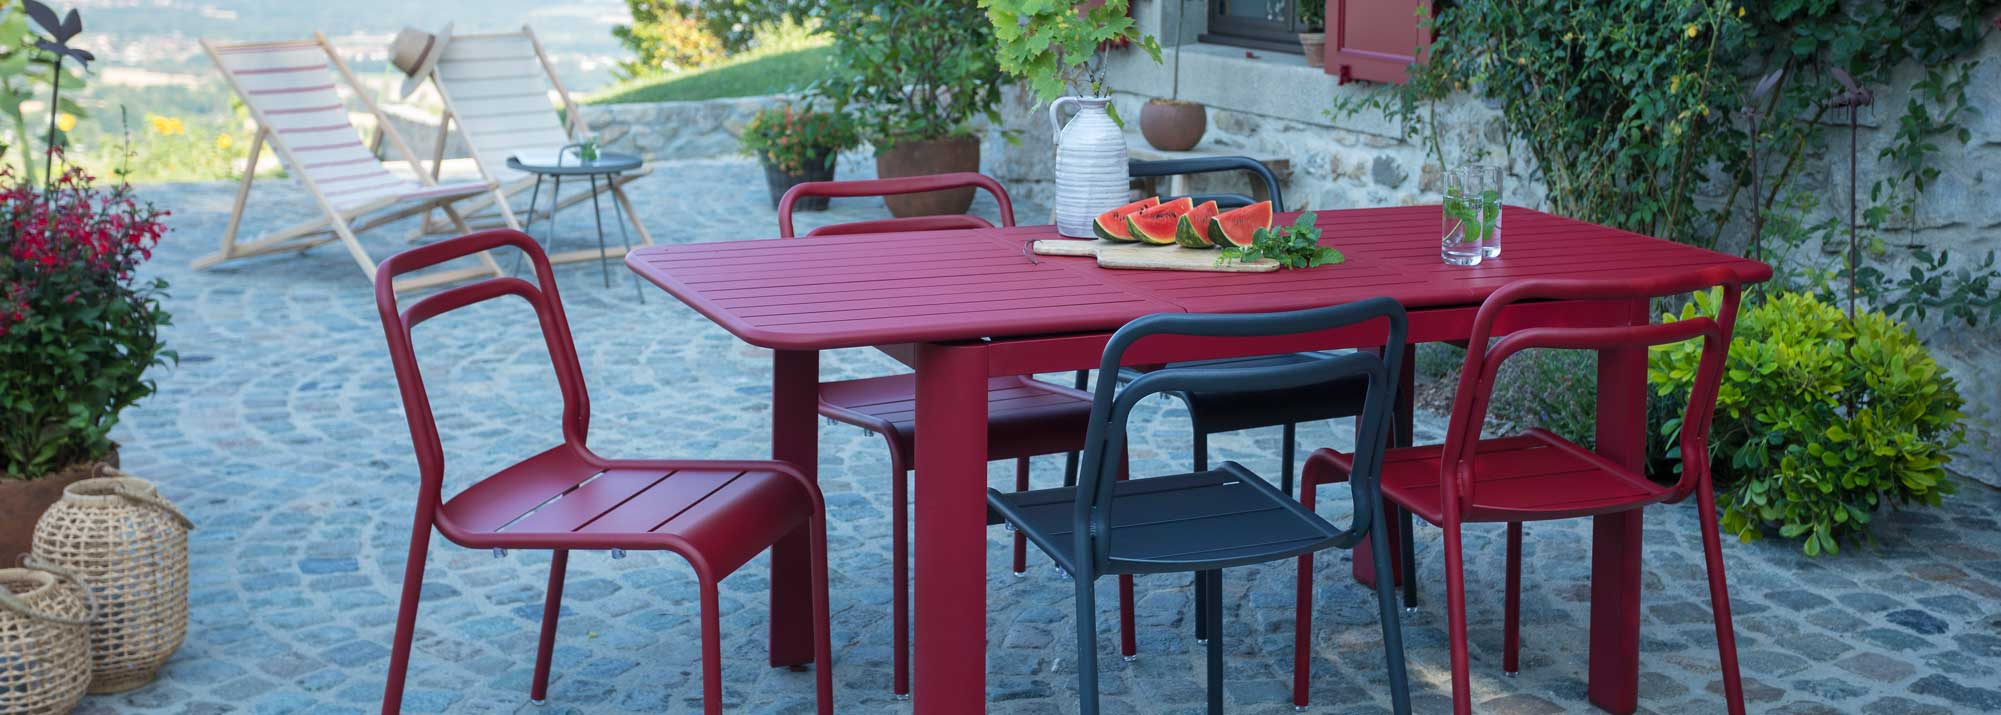 Table de jardin : Botanic®, tables de jardin en aluminium ...